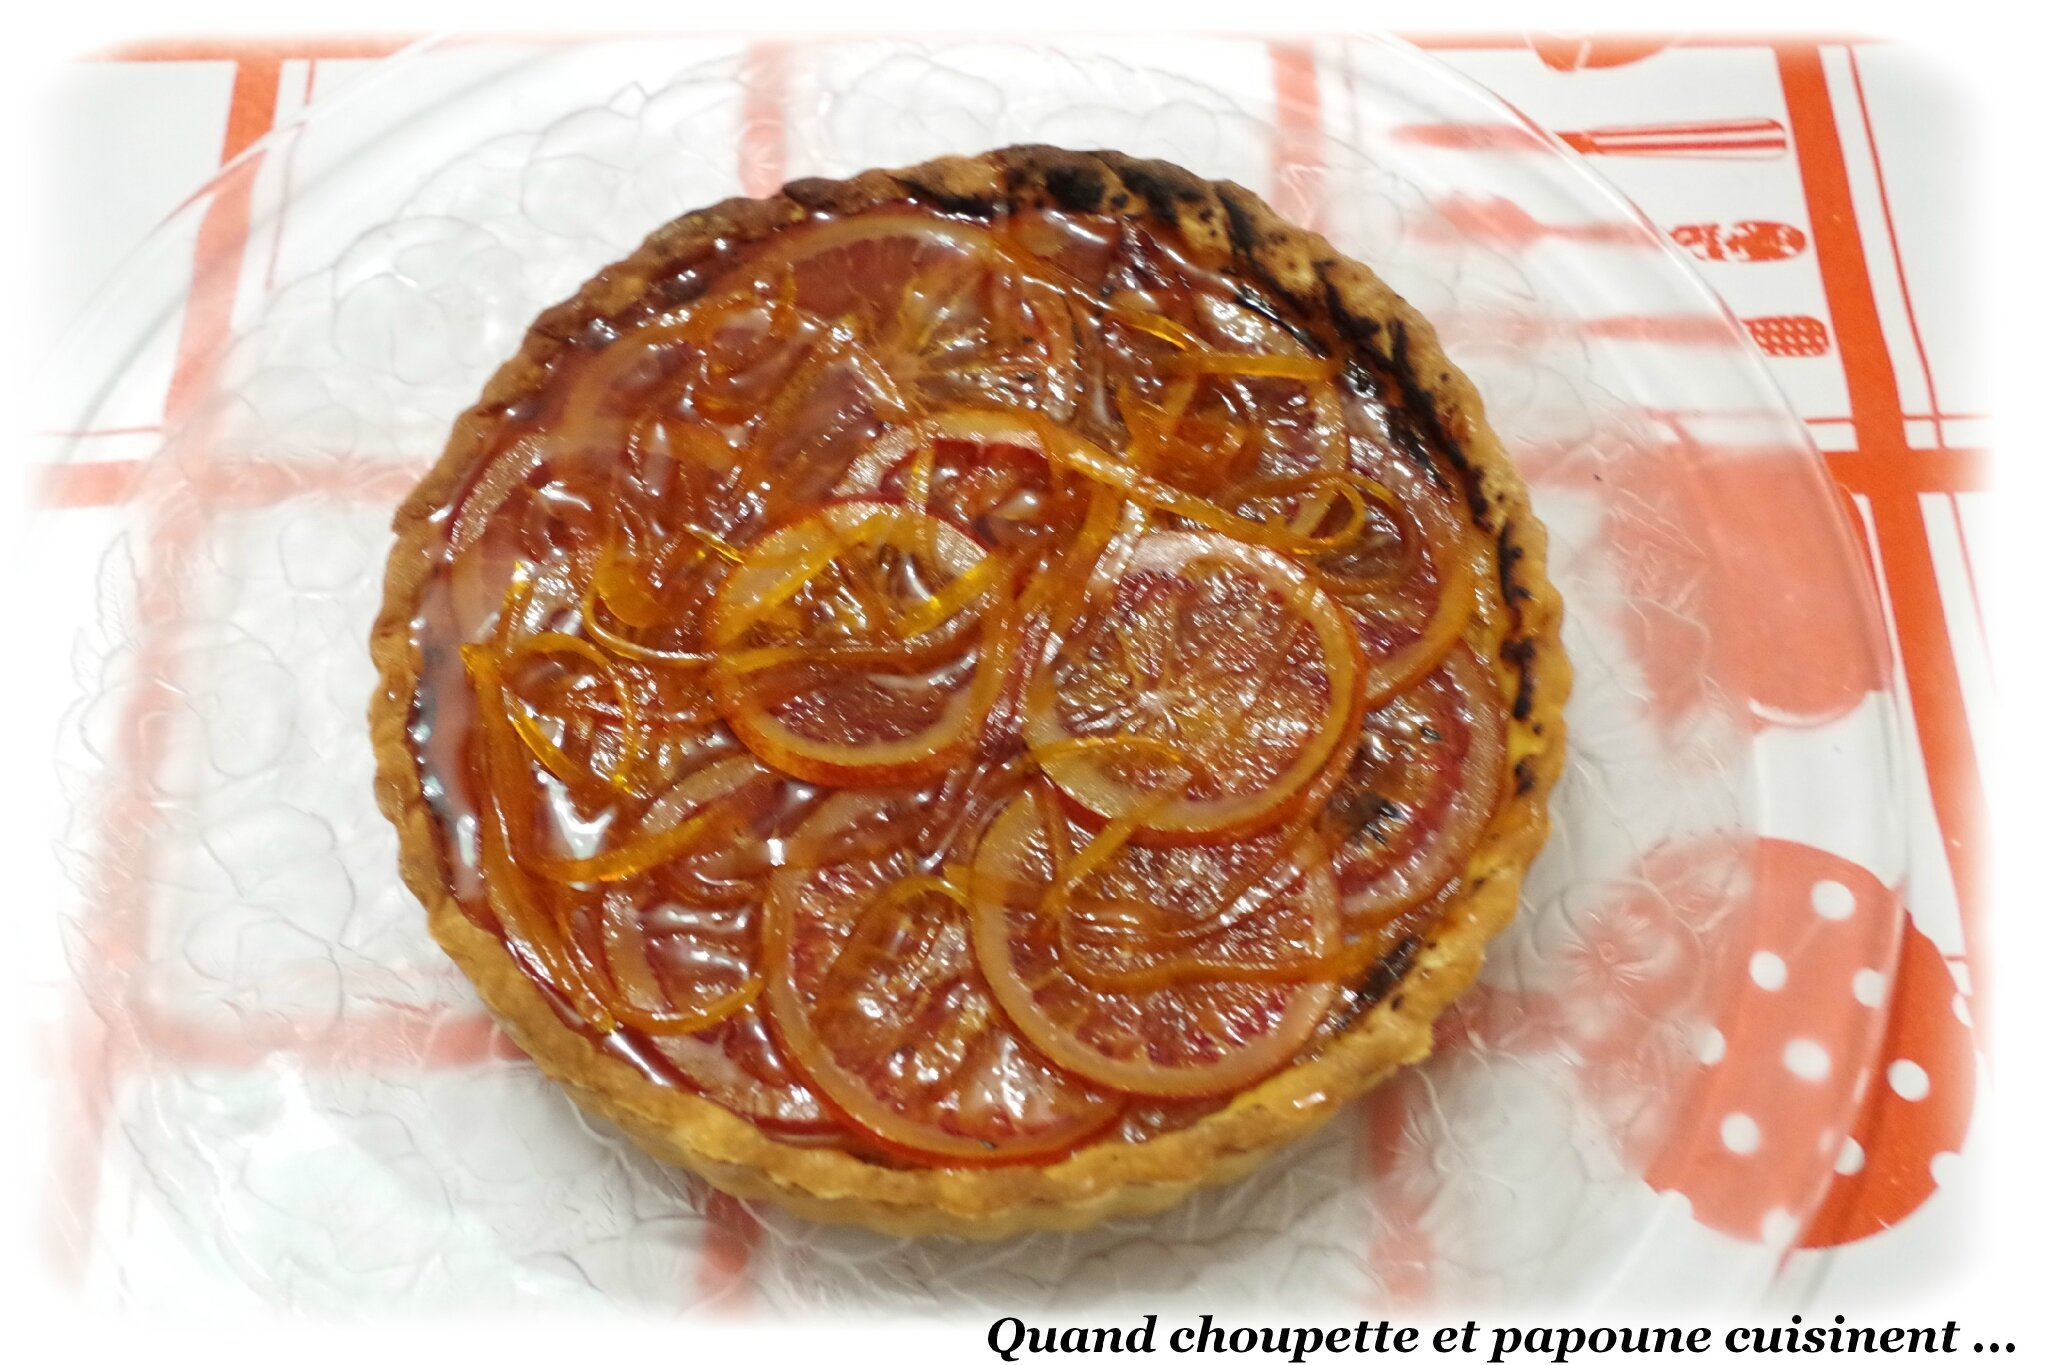 TARTE A L'ORANGE FACON PAPOUNE